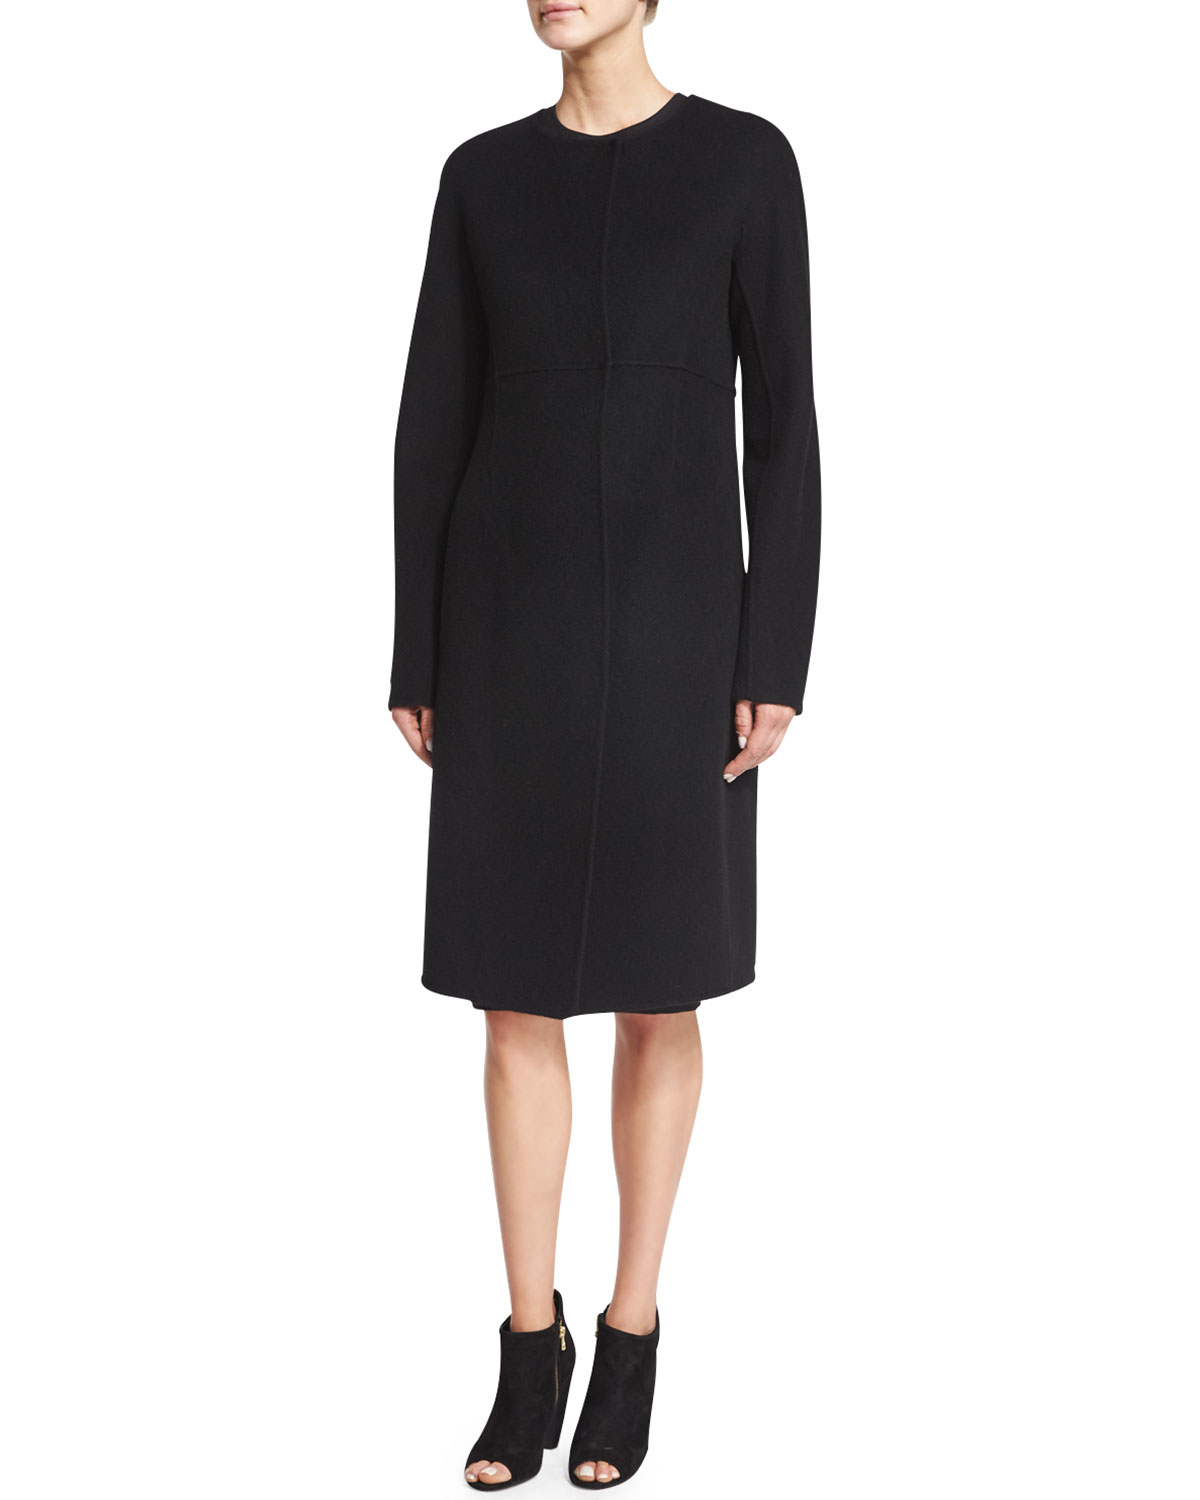 Donna karan Collarless Double-face Cashmere Coat in Black | Lyst